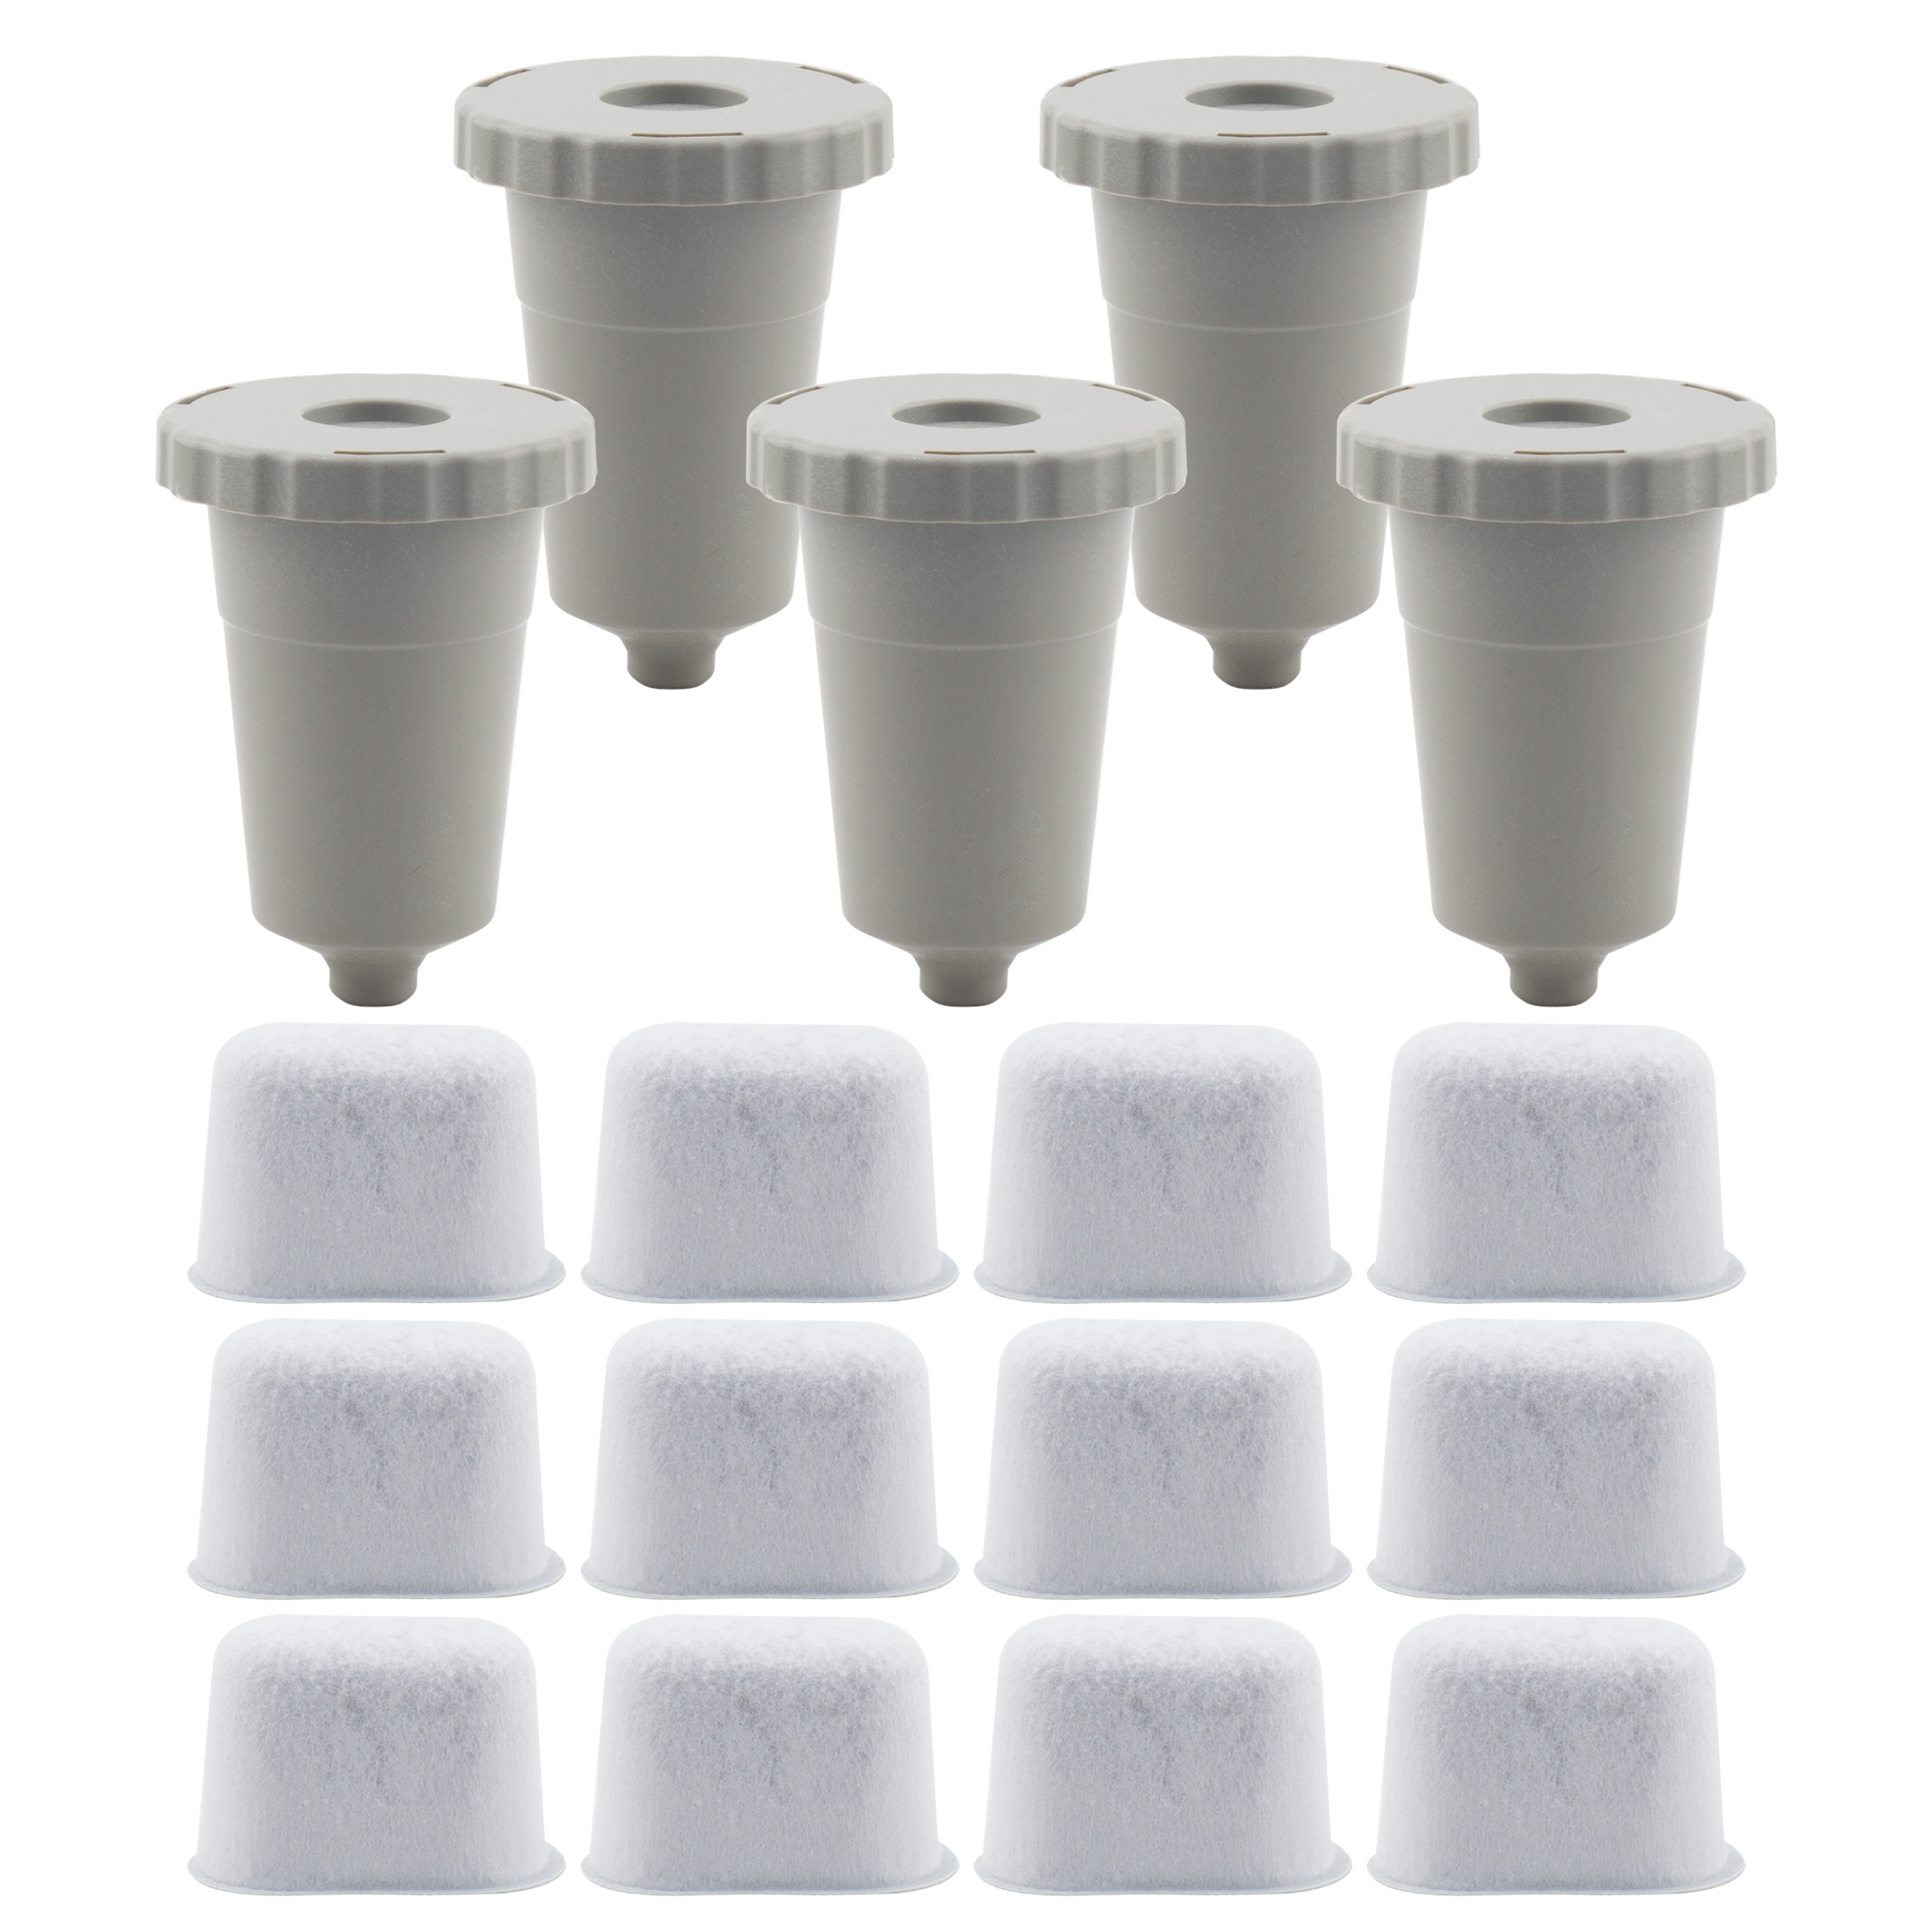 Filter Holder And 6-pack Includes Filter Holder And 6-pack of Keurig 1.0 Compatible Water Filters Keurig Starter Kit Replacement Charcoal Water filter Cartridges for Keurig 1.0 Classic Brewers